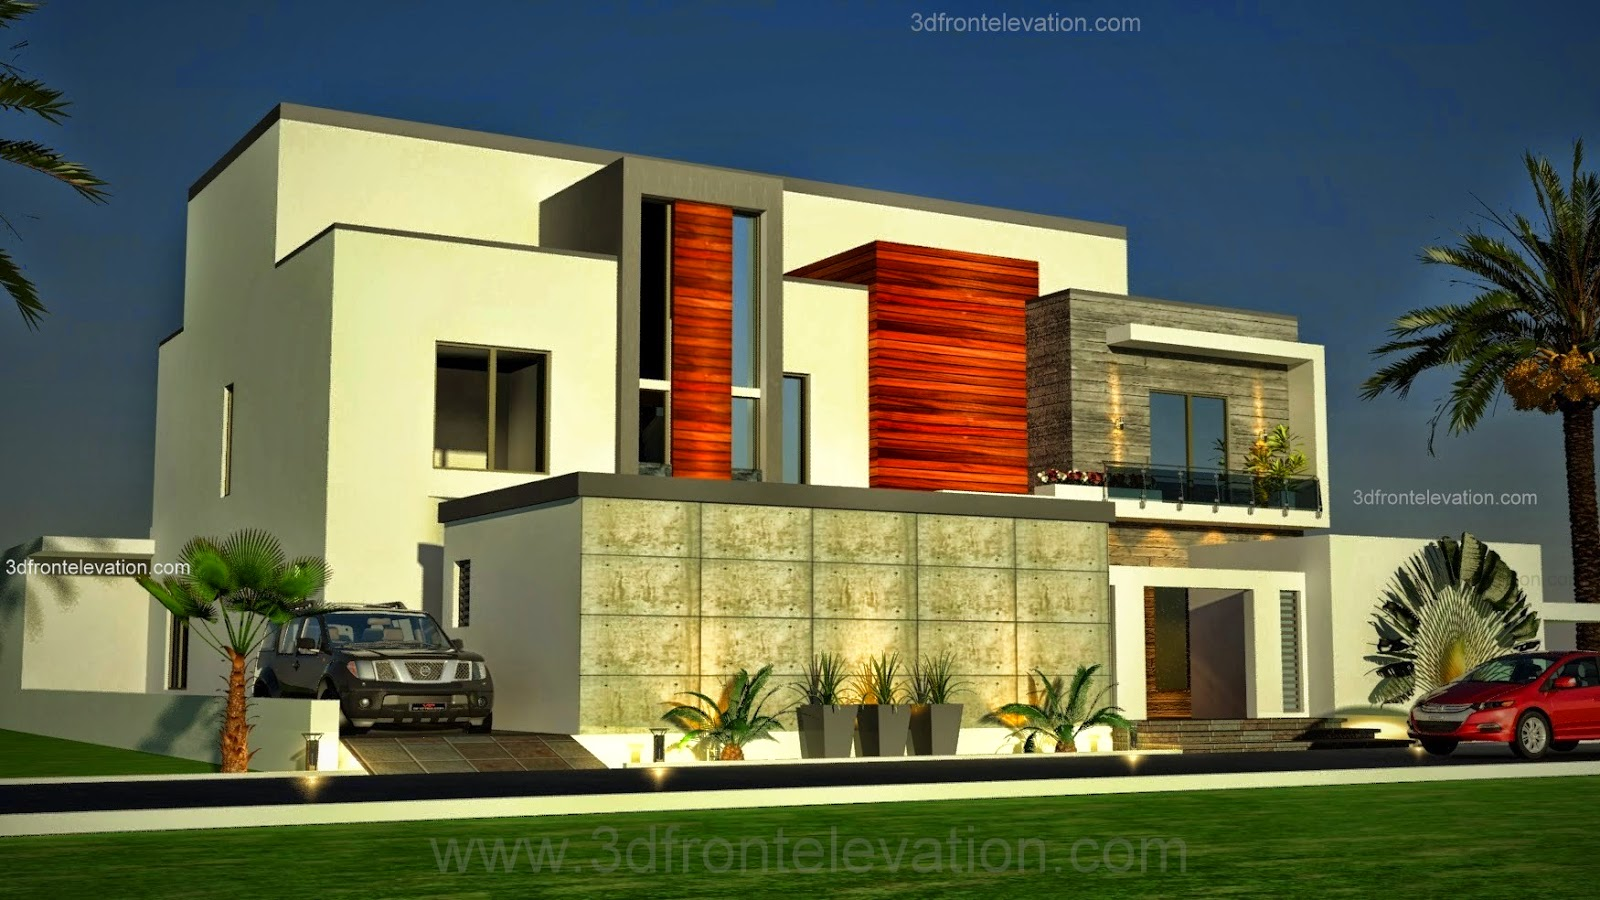 3d front february 2014 Best home designs of 2014